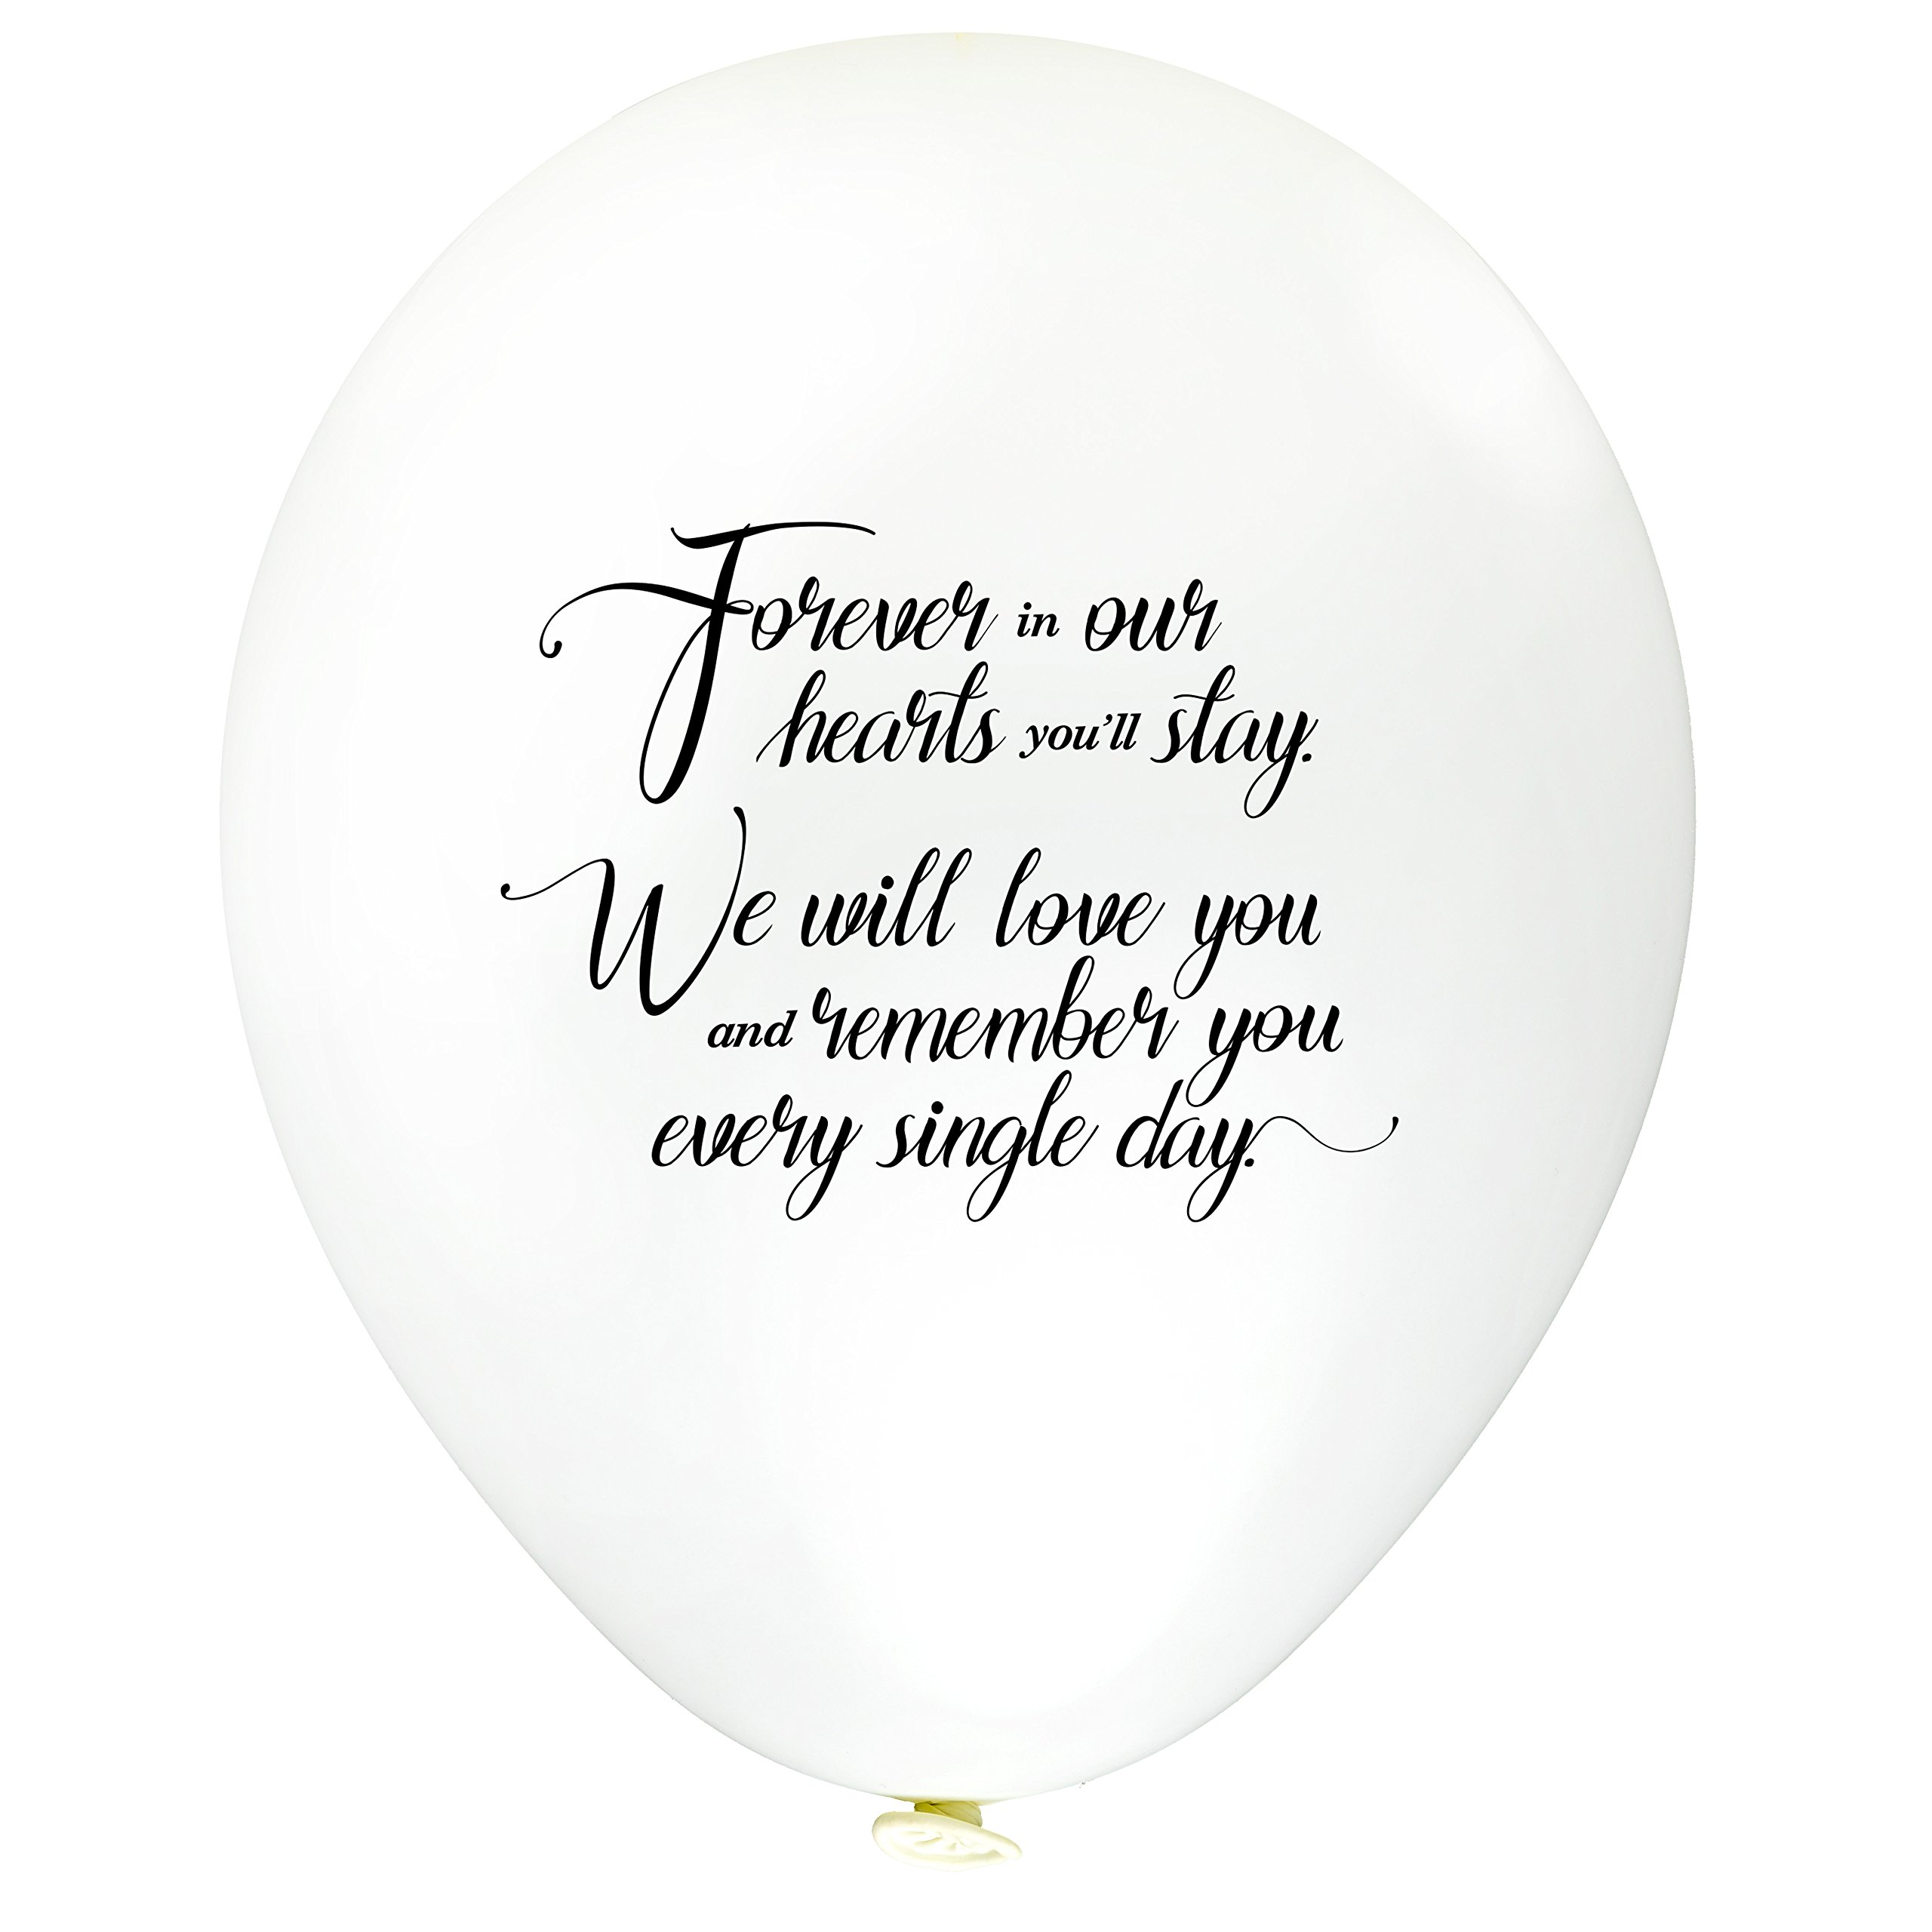 60pc White Remembrance Bereavement Memorial Funeral Biodegradable Helium Quality for Balloon Releases - Personalised'' Forever in Our Hearts You'll Stay, We Will Love.'' - by TOKYO SATURDAY